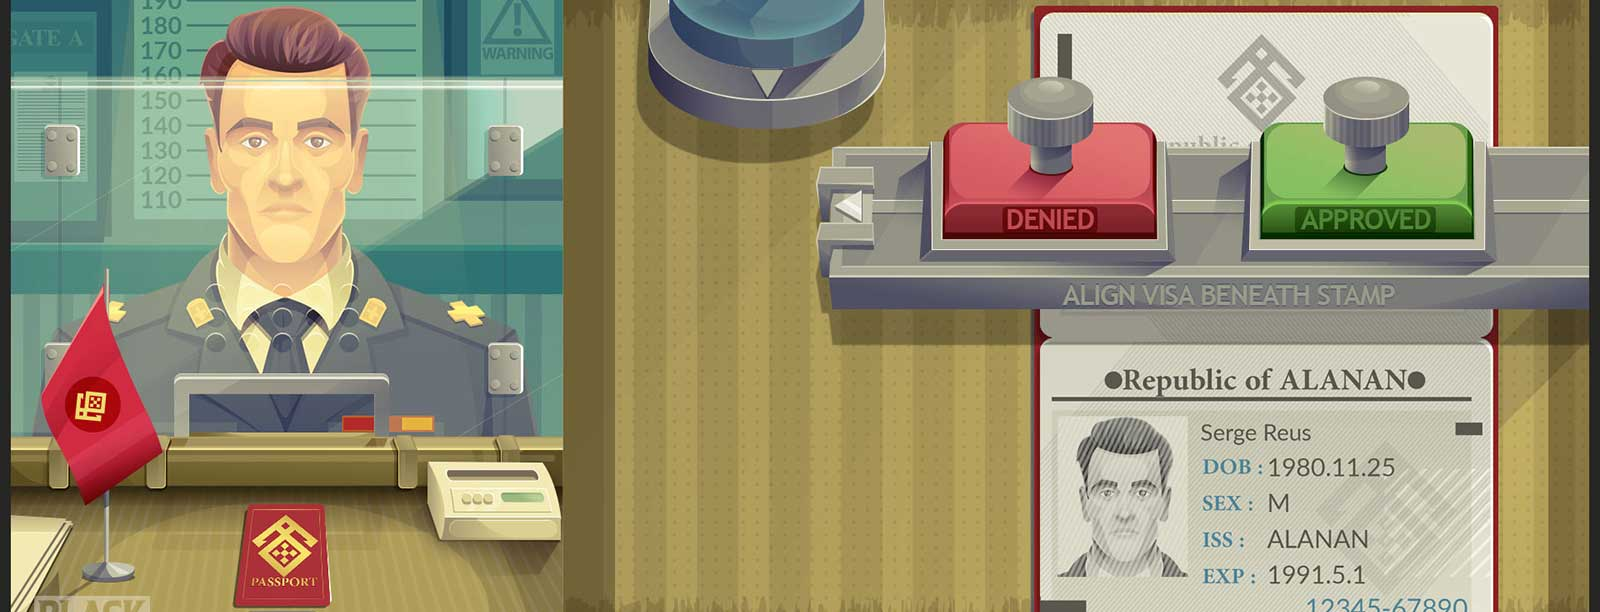 10 Games Like Papers Please for Android